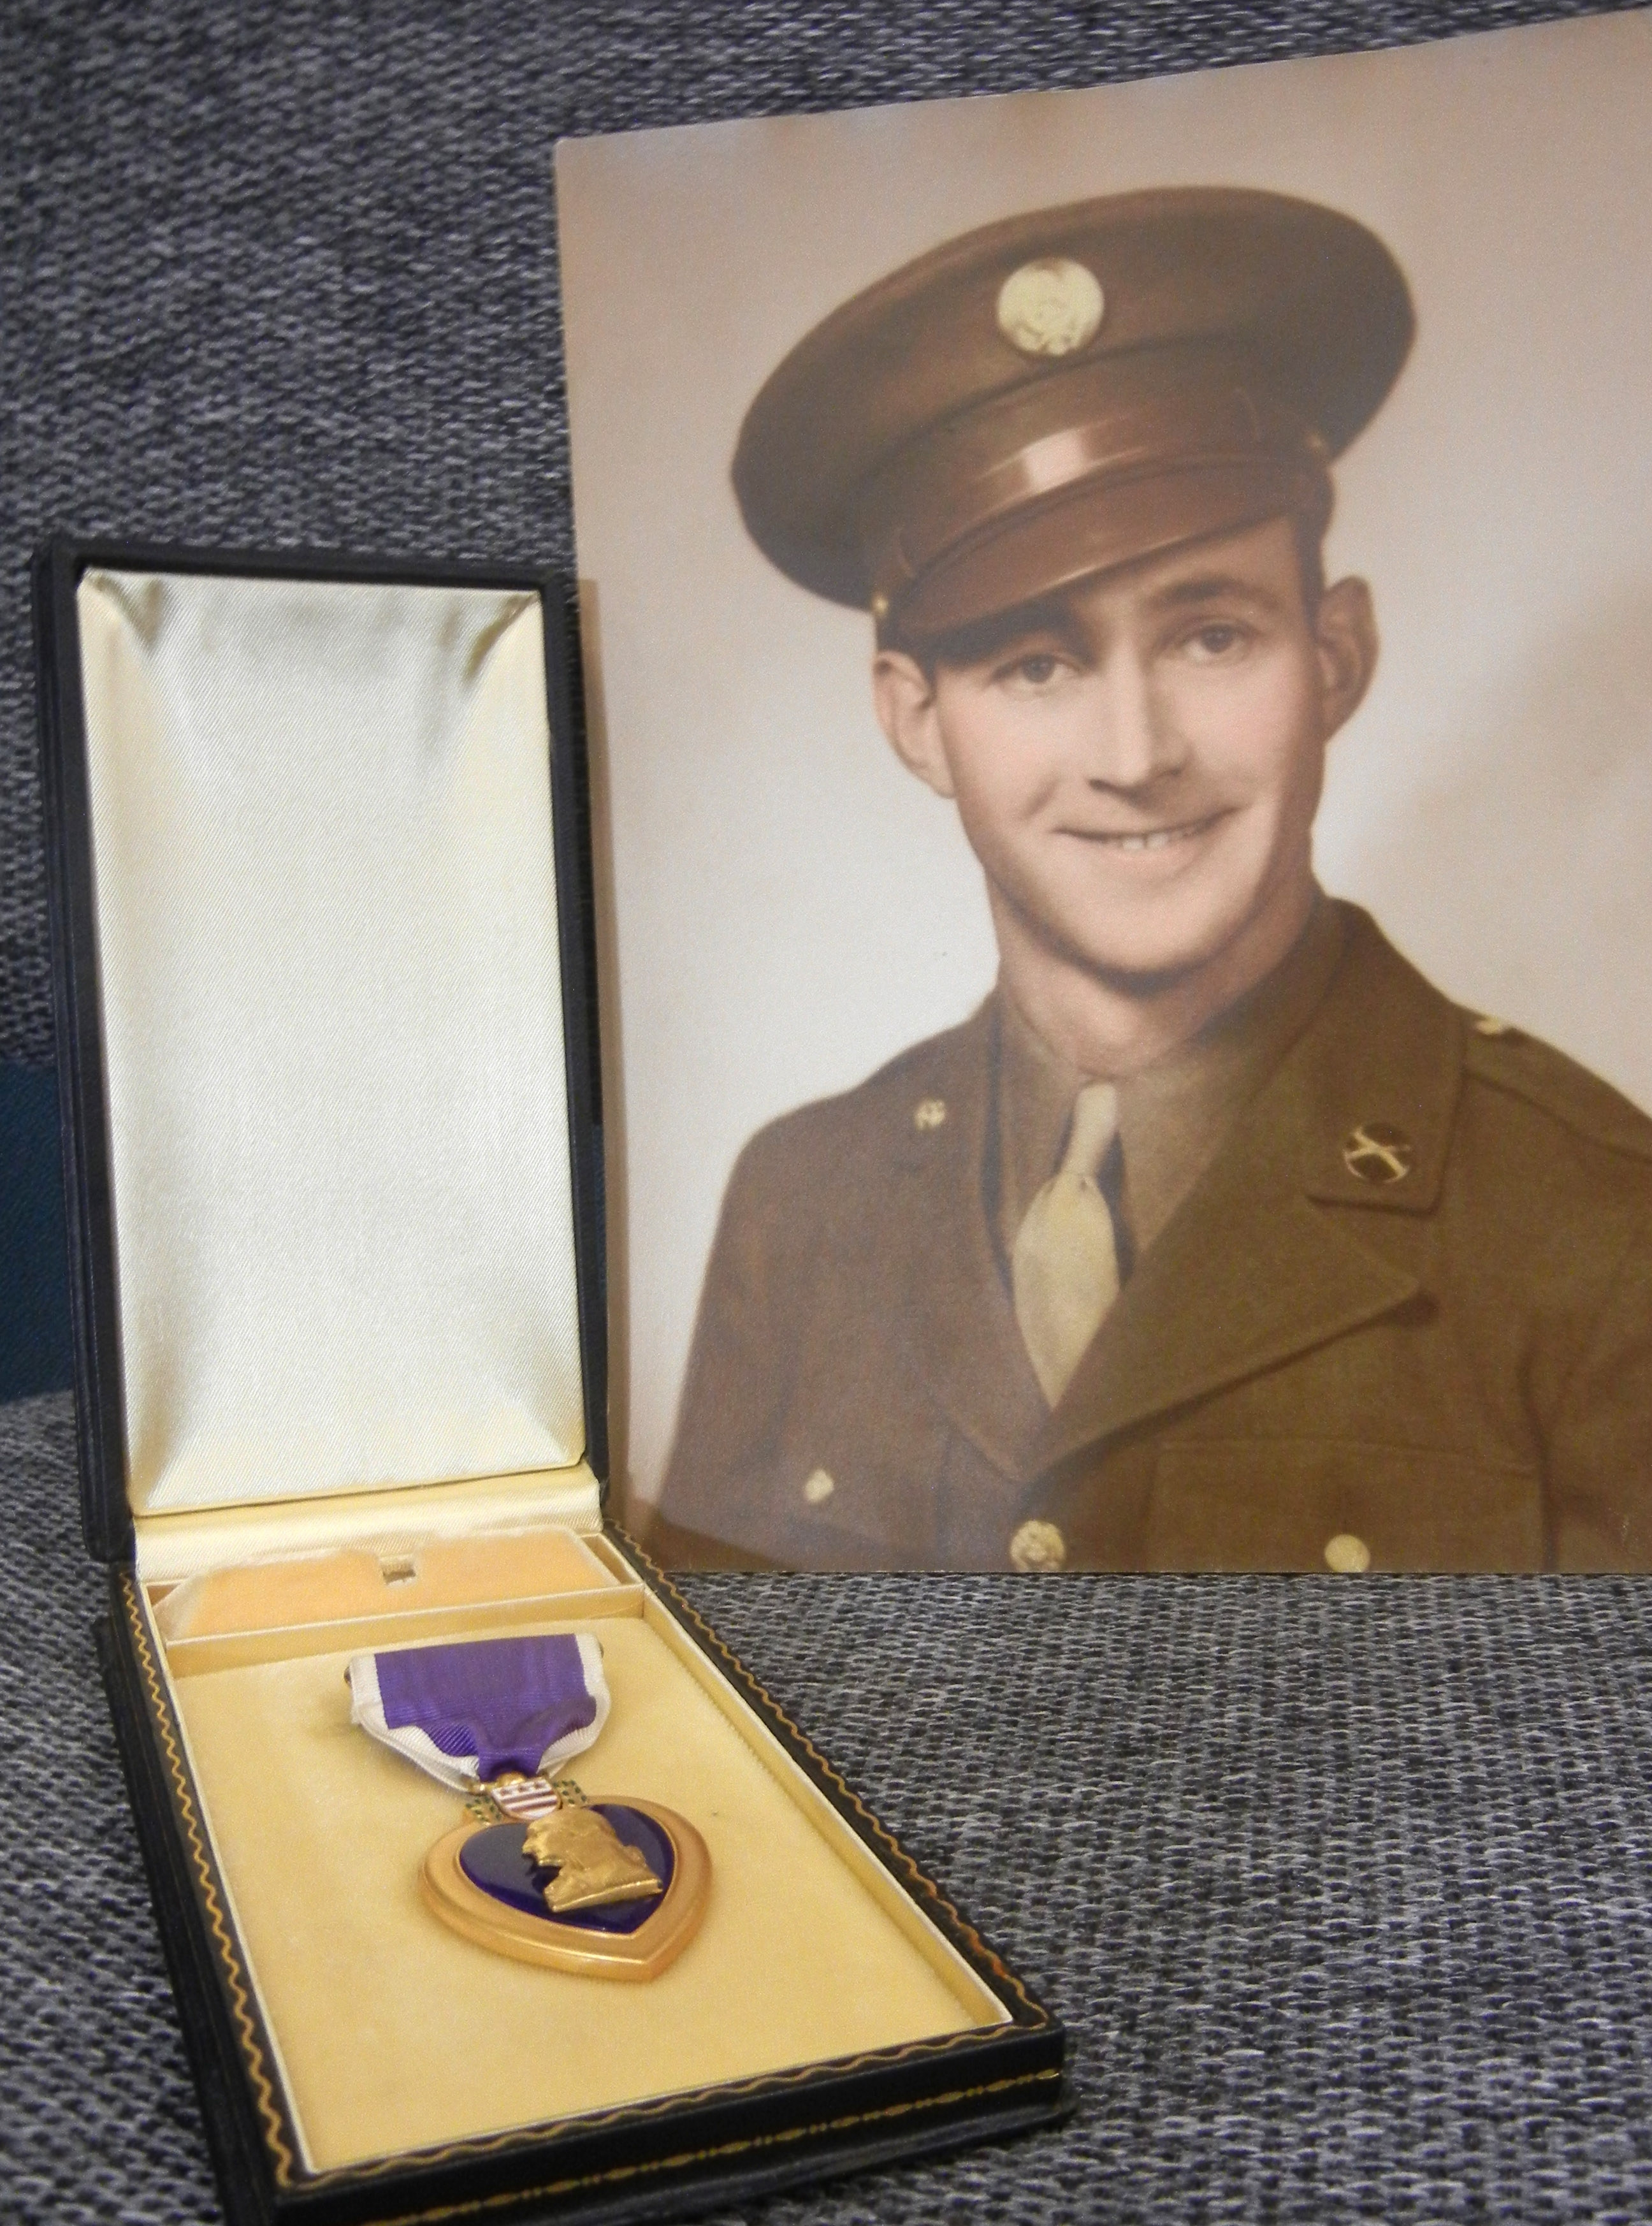 A Goodwill Industries  worker found a photo of  Pvt. James Roland and his World War II medal.